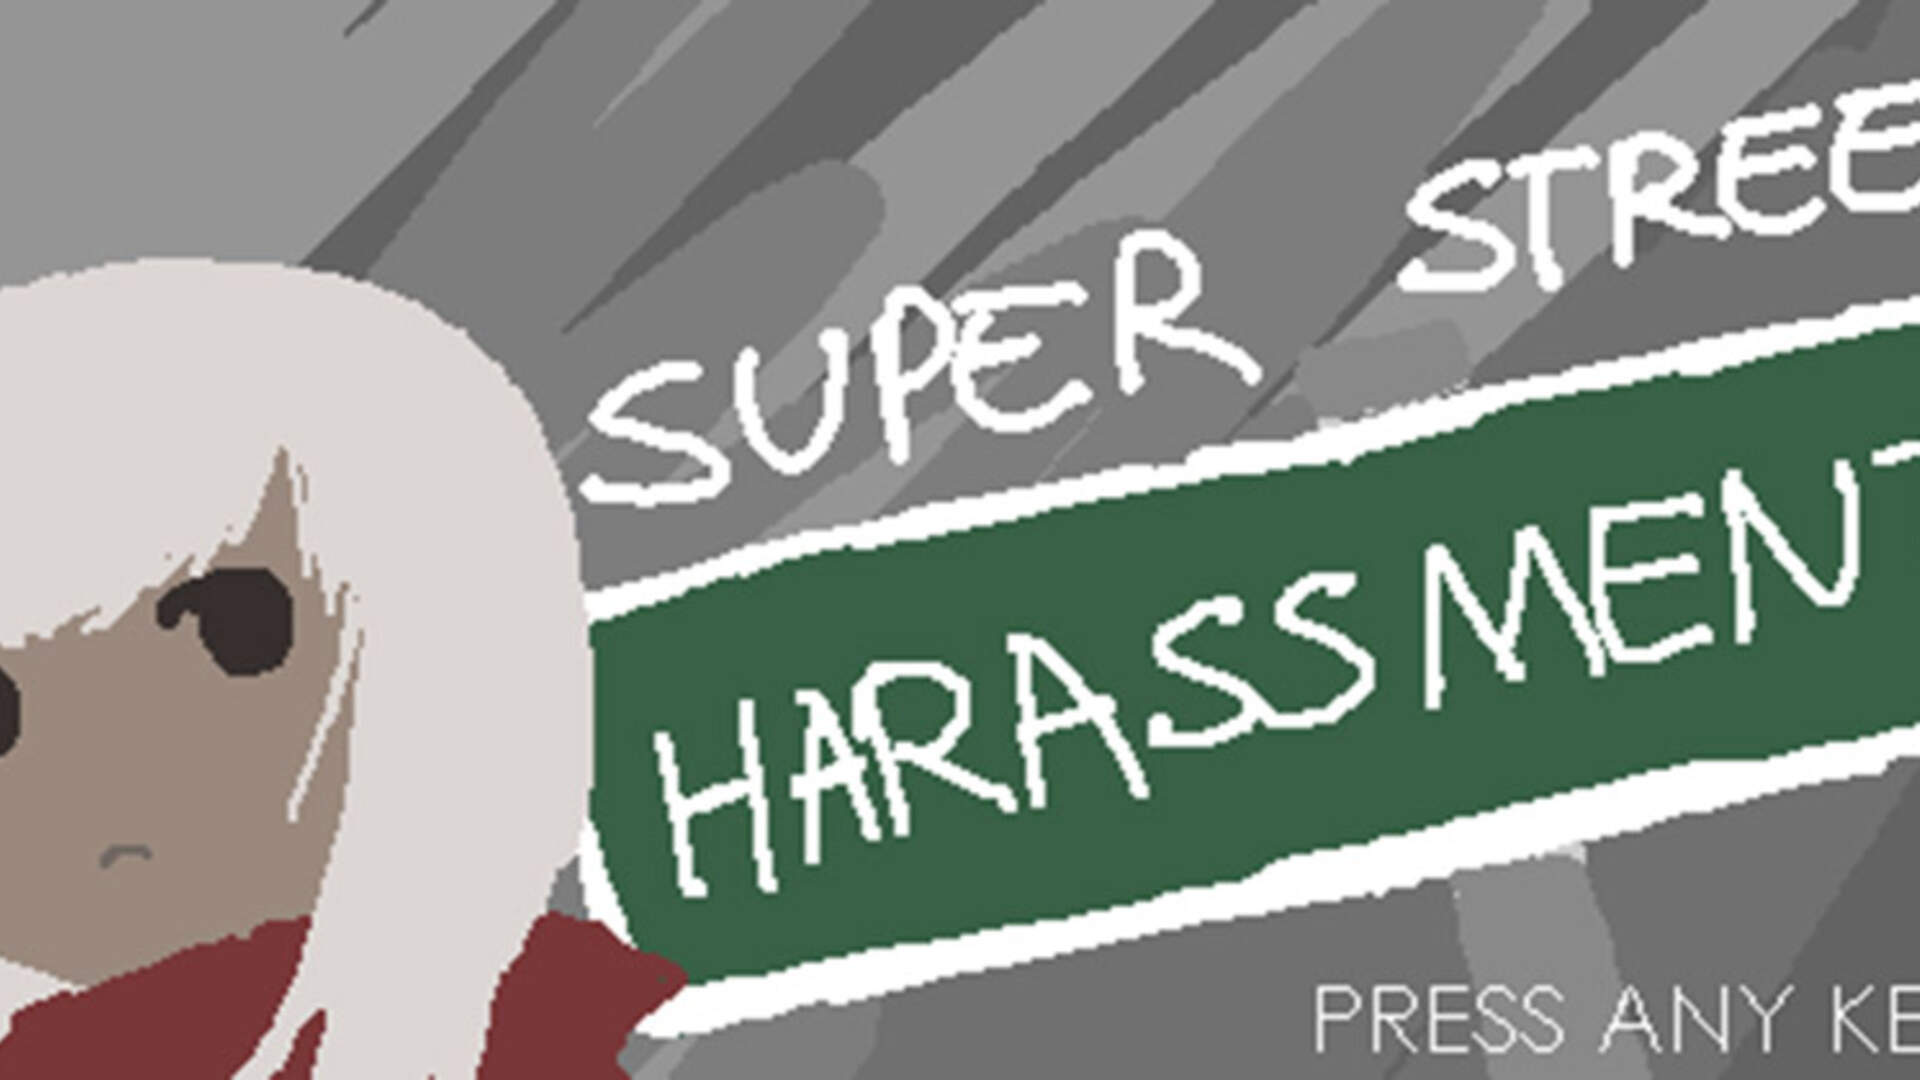 Welcome to the Jam: The Making of Super Street Harassment RPG